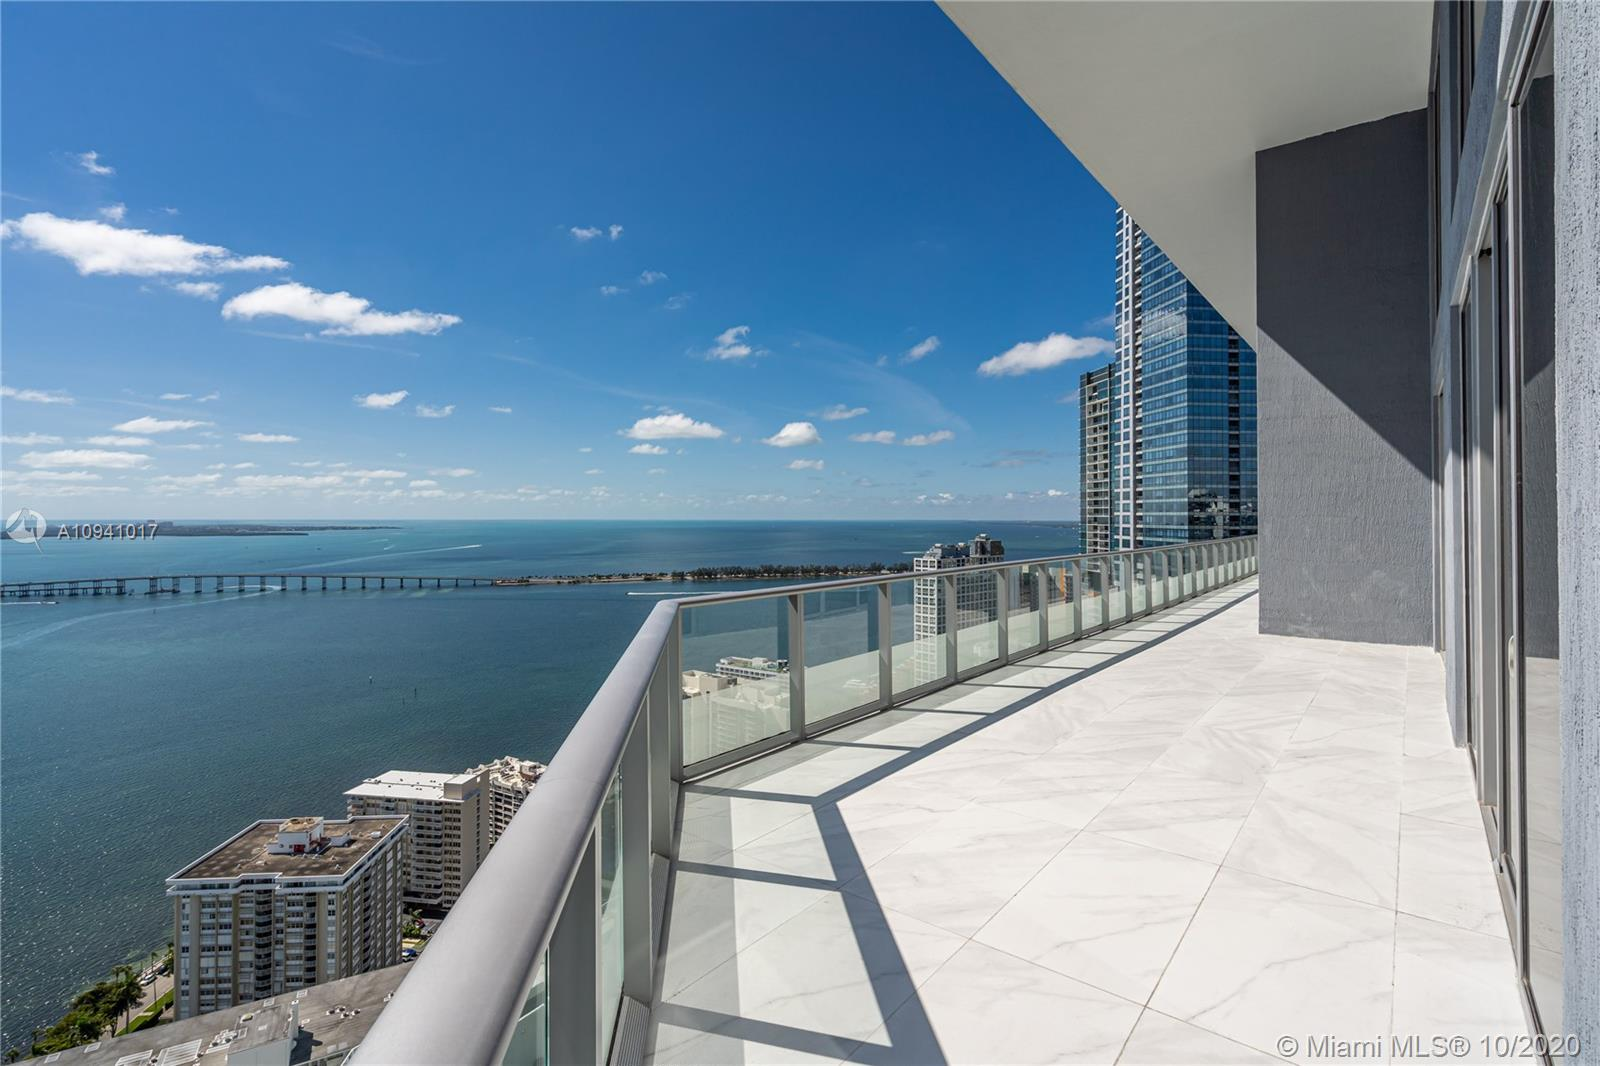 Breathtaking water views from this brand new 2 Story Penthouse. 20 feet high ceilings, italian designer open kitchen plus full size Butler's Kitchen. Lovely white 24 x 48 white italian white porcelain. 6 bedrooms 6.5 Bathrooms and includes Maid's Quarters with separate entrance, floor-to-ceiling glass impact resistant windows, movie theater room, family room, office-library, huge walk-in california closets, large balconies and impressive open spaces. 5 parking spaces. Luxury building with top of the line amenities. 24/7 security and concierge, pool, gym, spa, movie theater, social room and more. A must see. Easy to show! Best in Brickell!